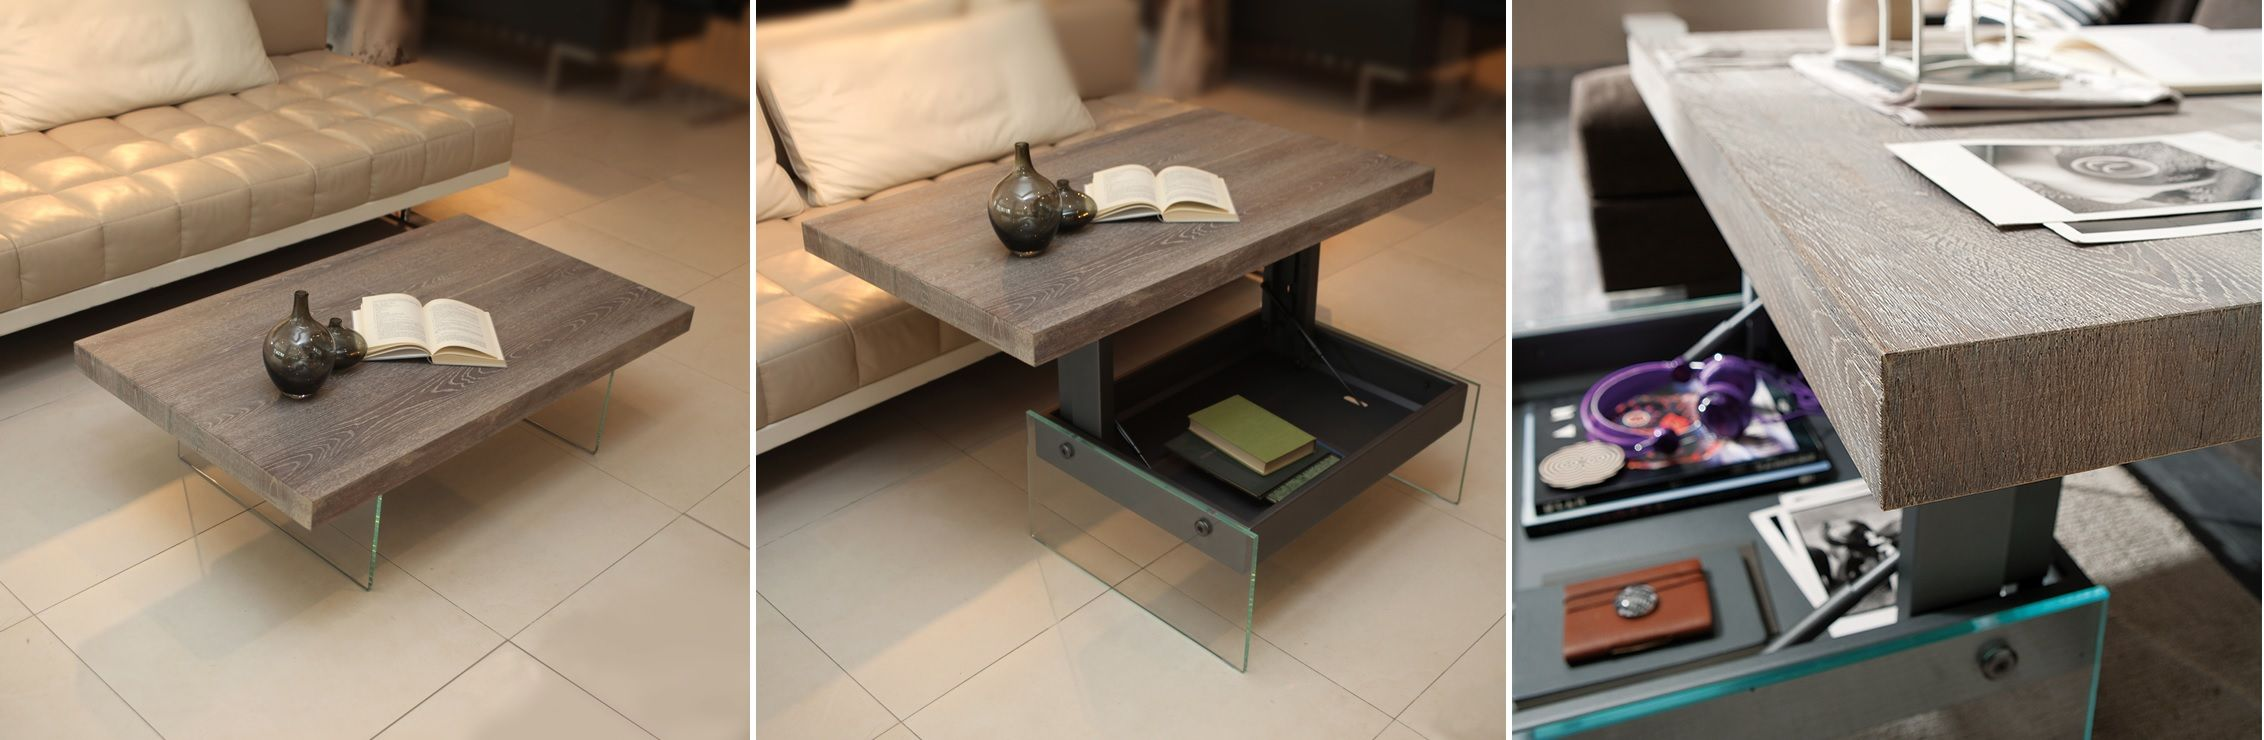 More Functions In A Compact Design Convertible Coffee Tables